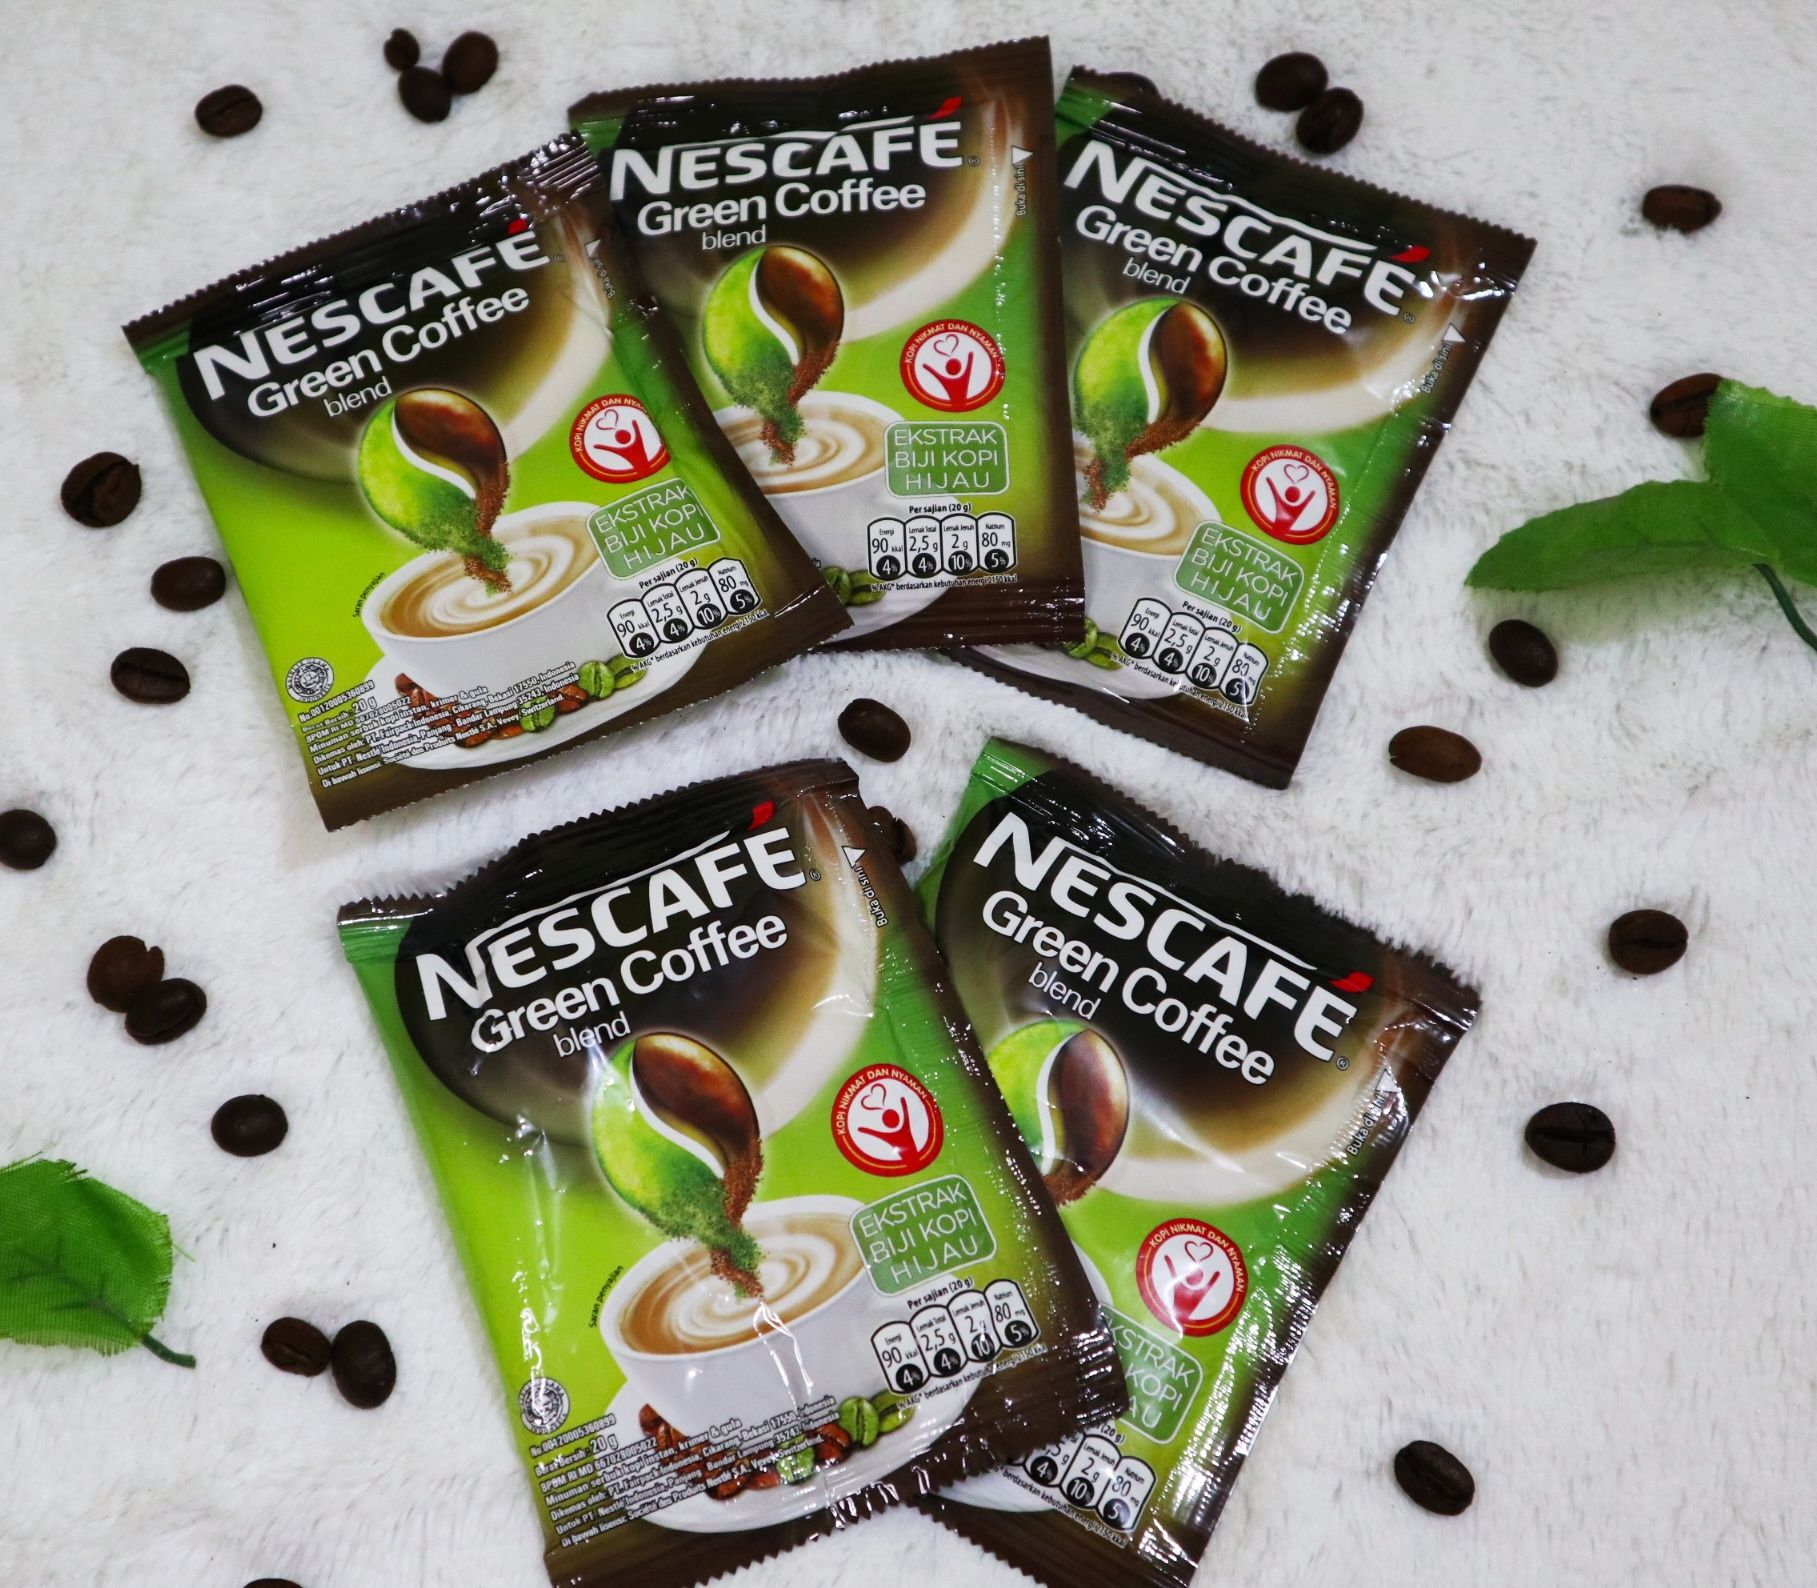 Nescafe Green Coffee Blend